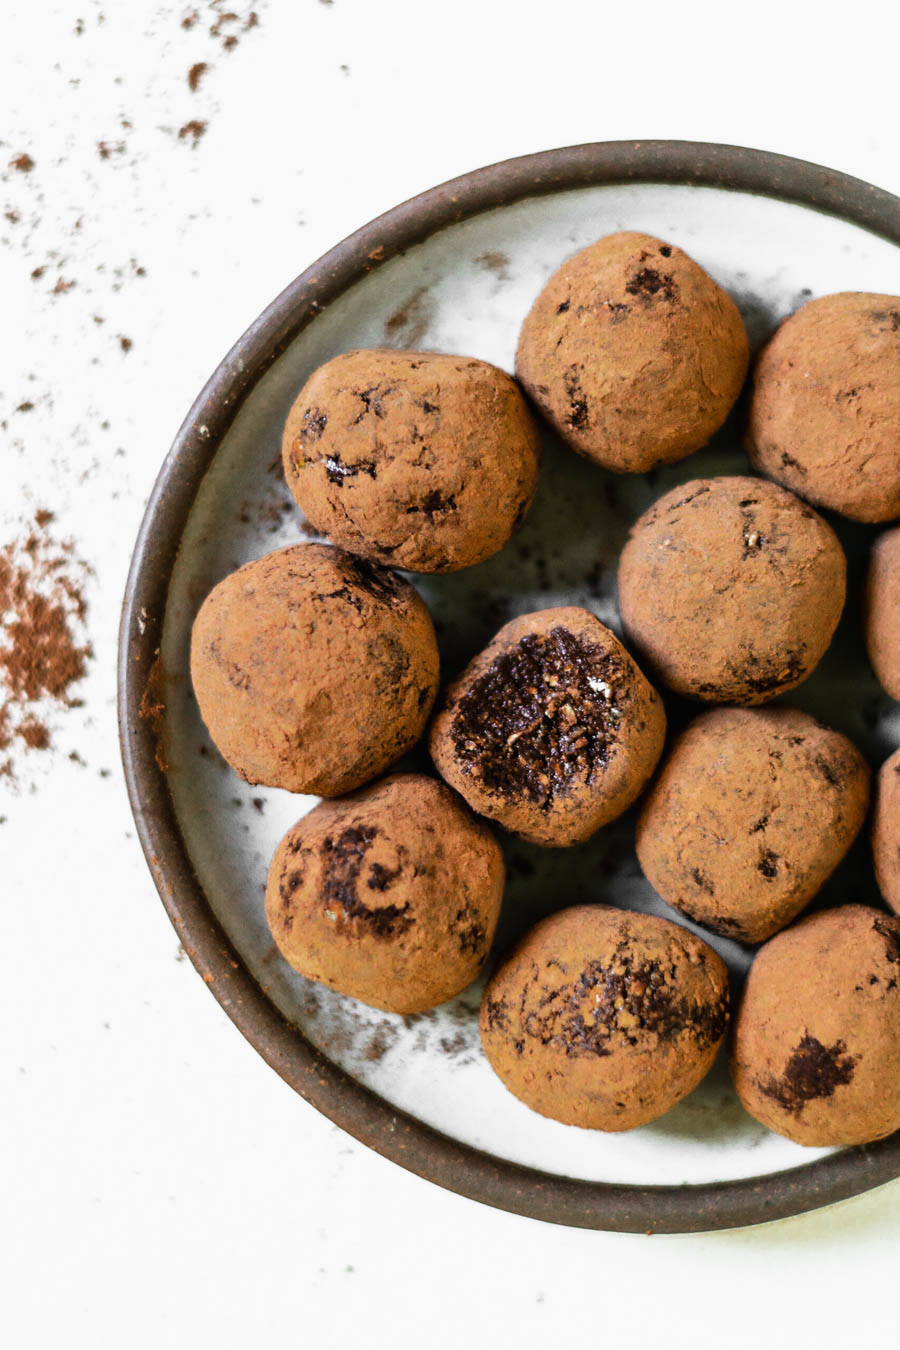 Chocolate Protein Balls (dairy-free, refined sugar-free) - Ingredients1 cup pitted dates1 cup sprouted oats1/2 cup walnuts2 Tbsp caco powder1/2 Tbsp maca powder2 Tbsp chia seeds1-2 scoops protein powder of choice (I used this one)splash of water